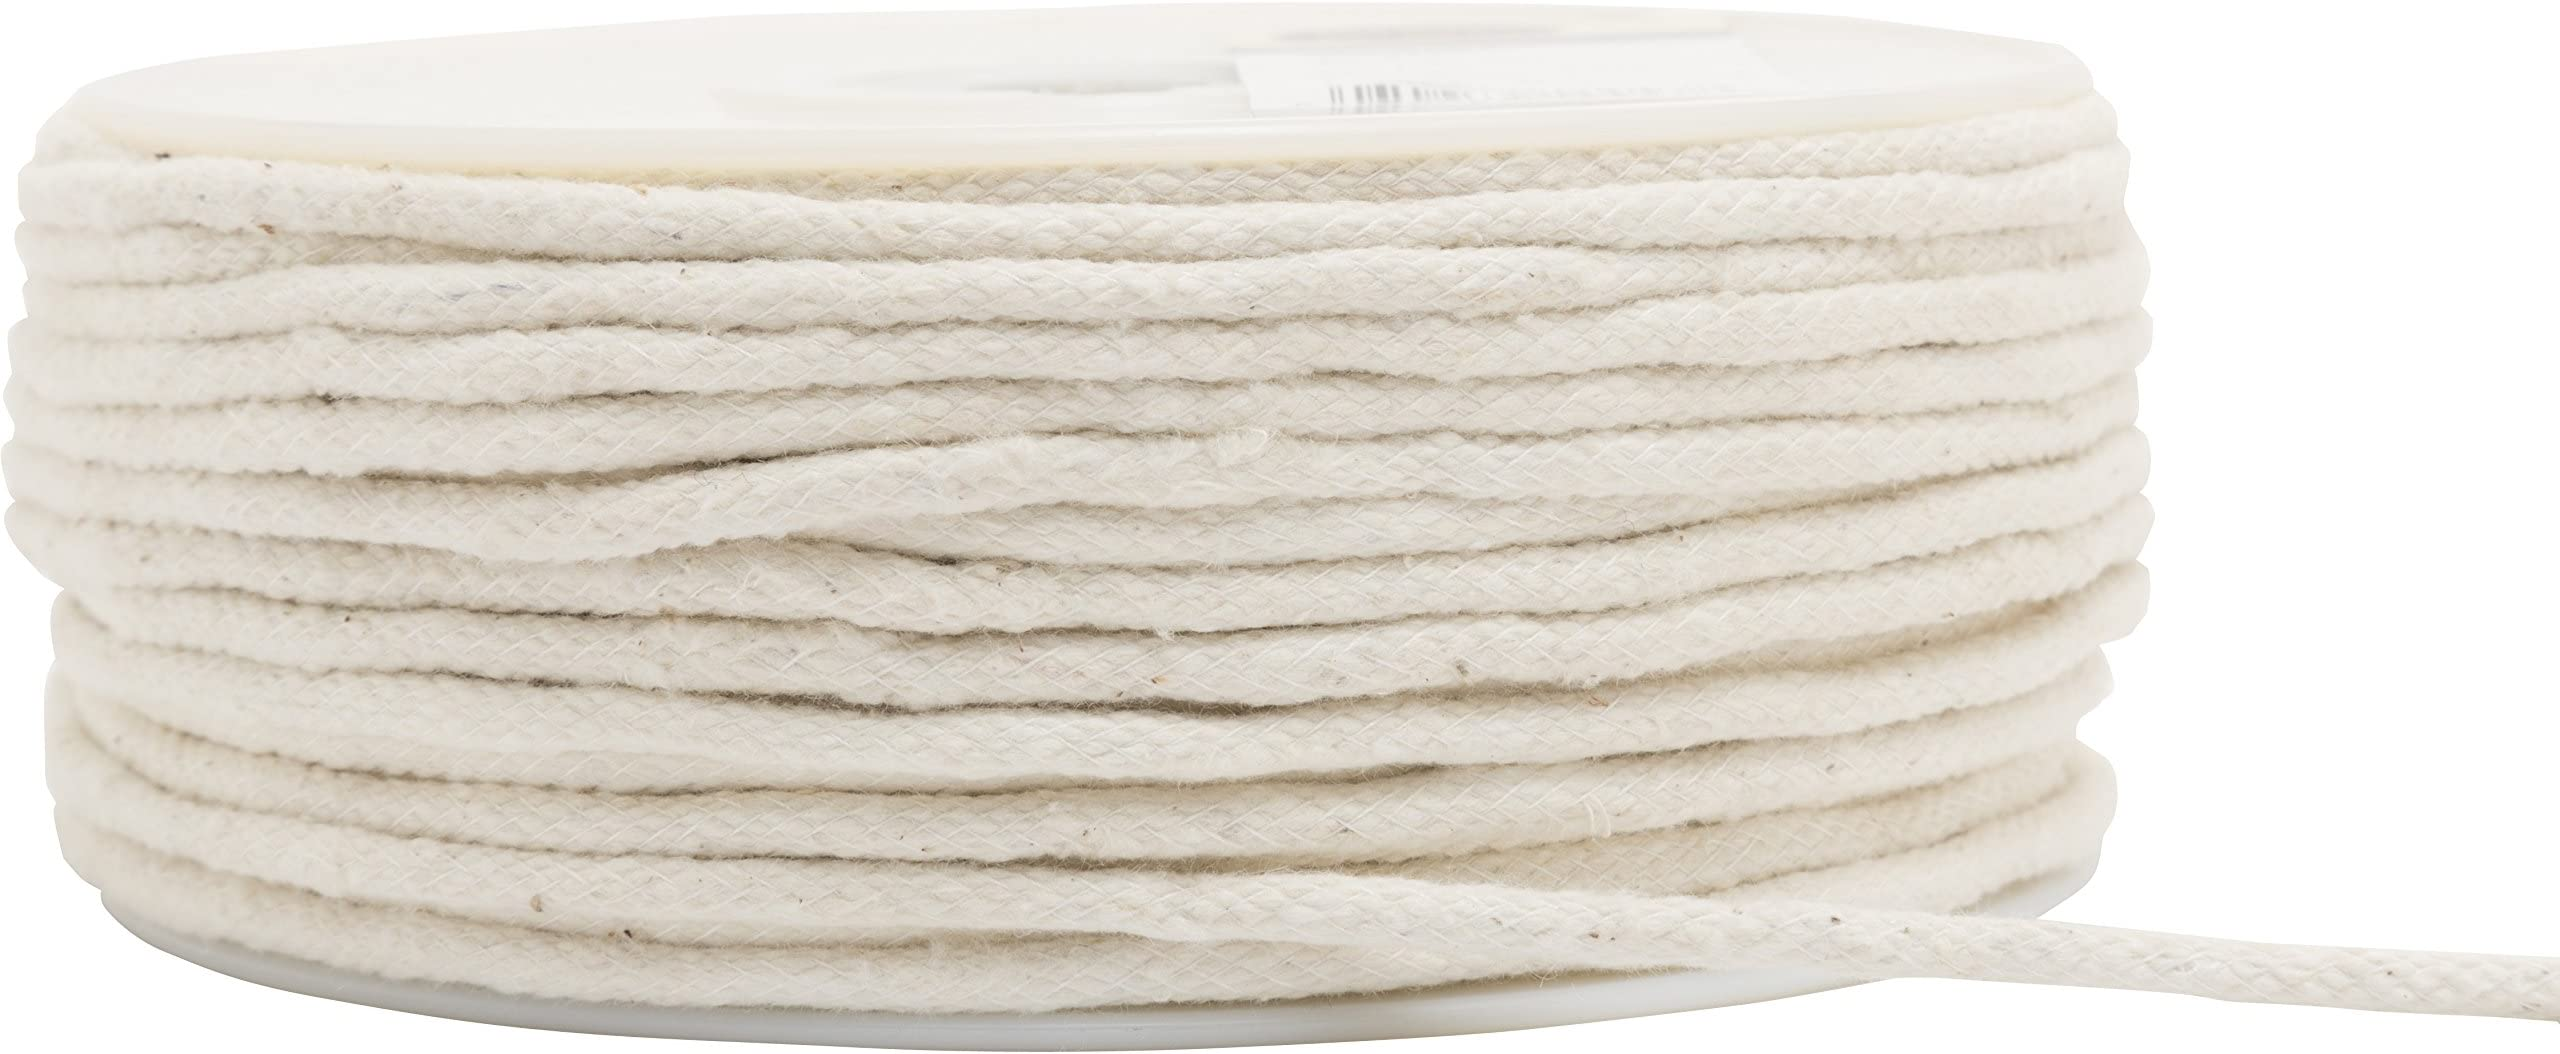 PIPING 18 Poly cotton 12 Yards